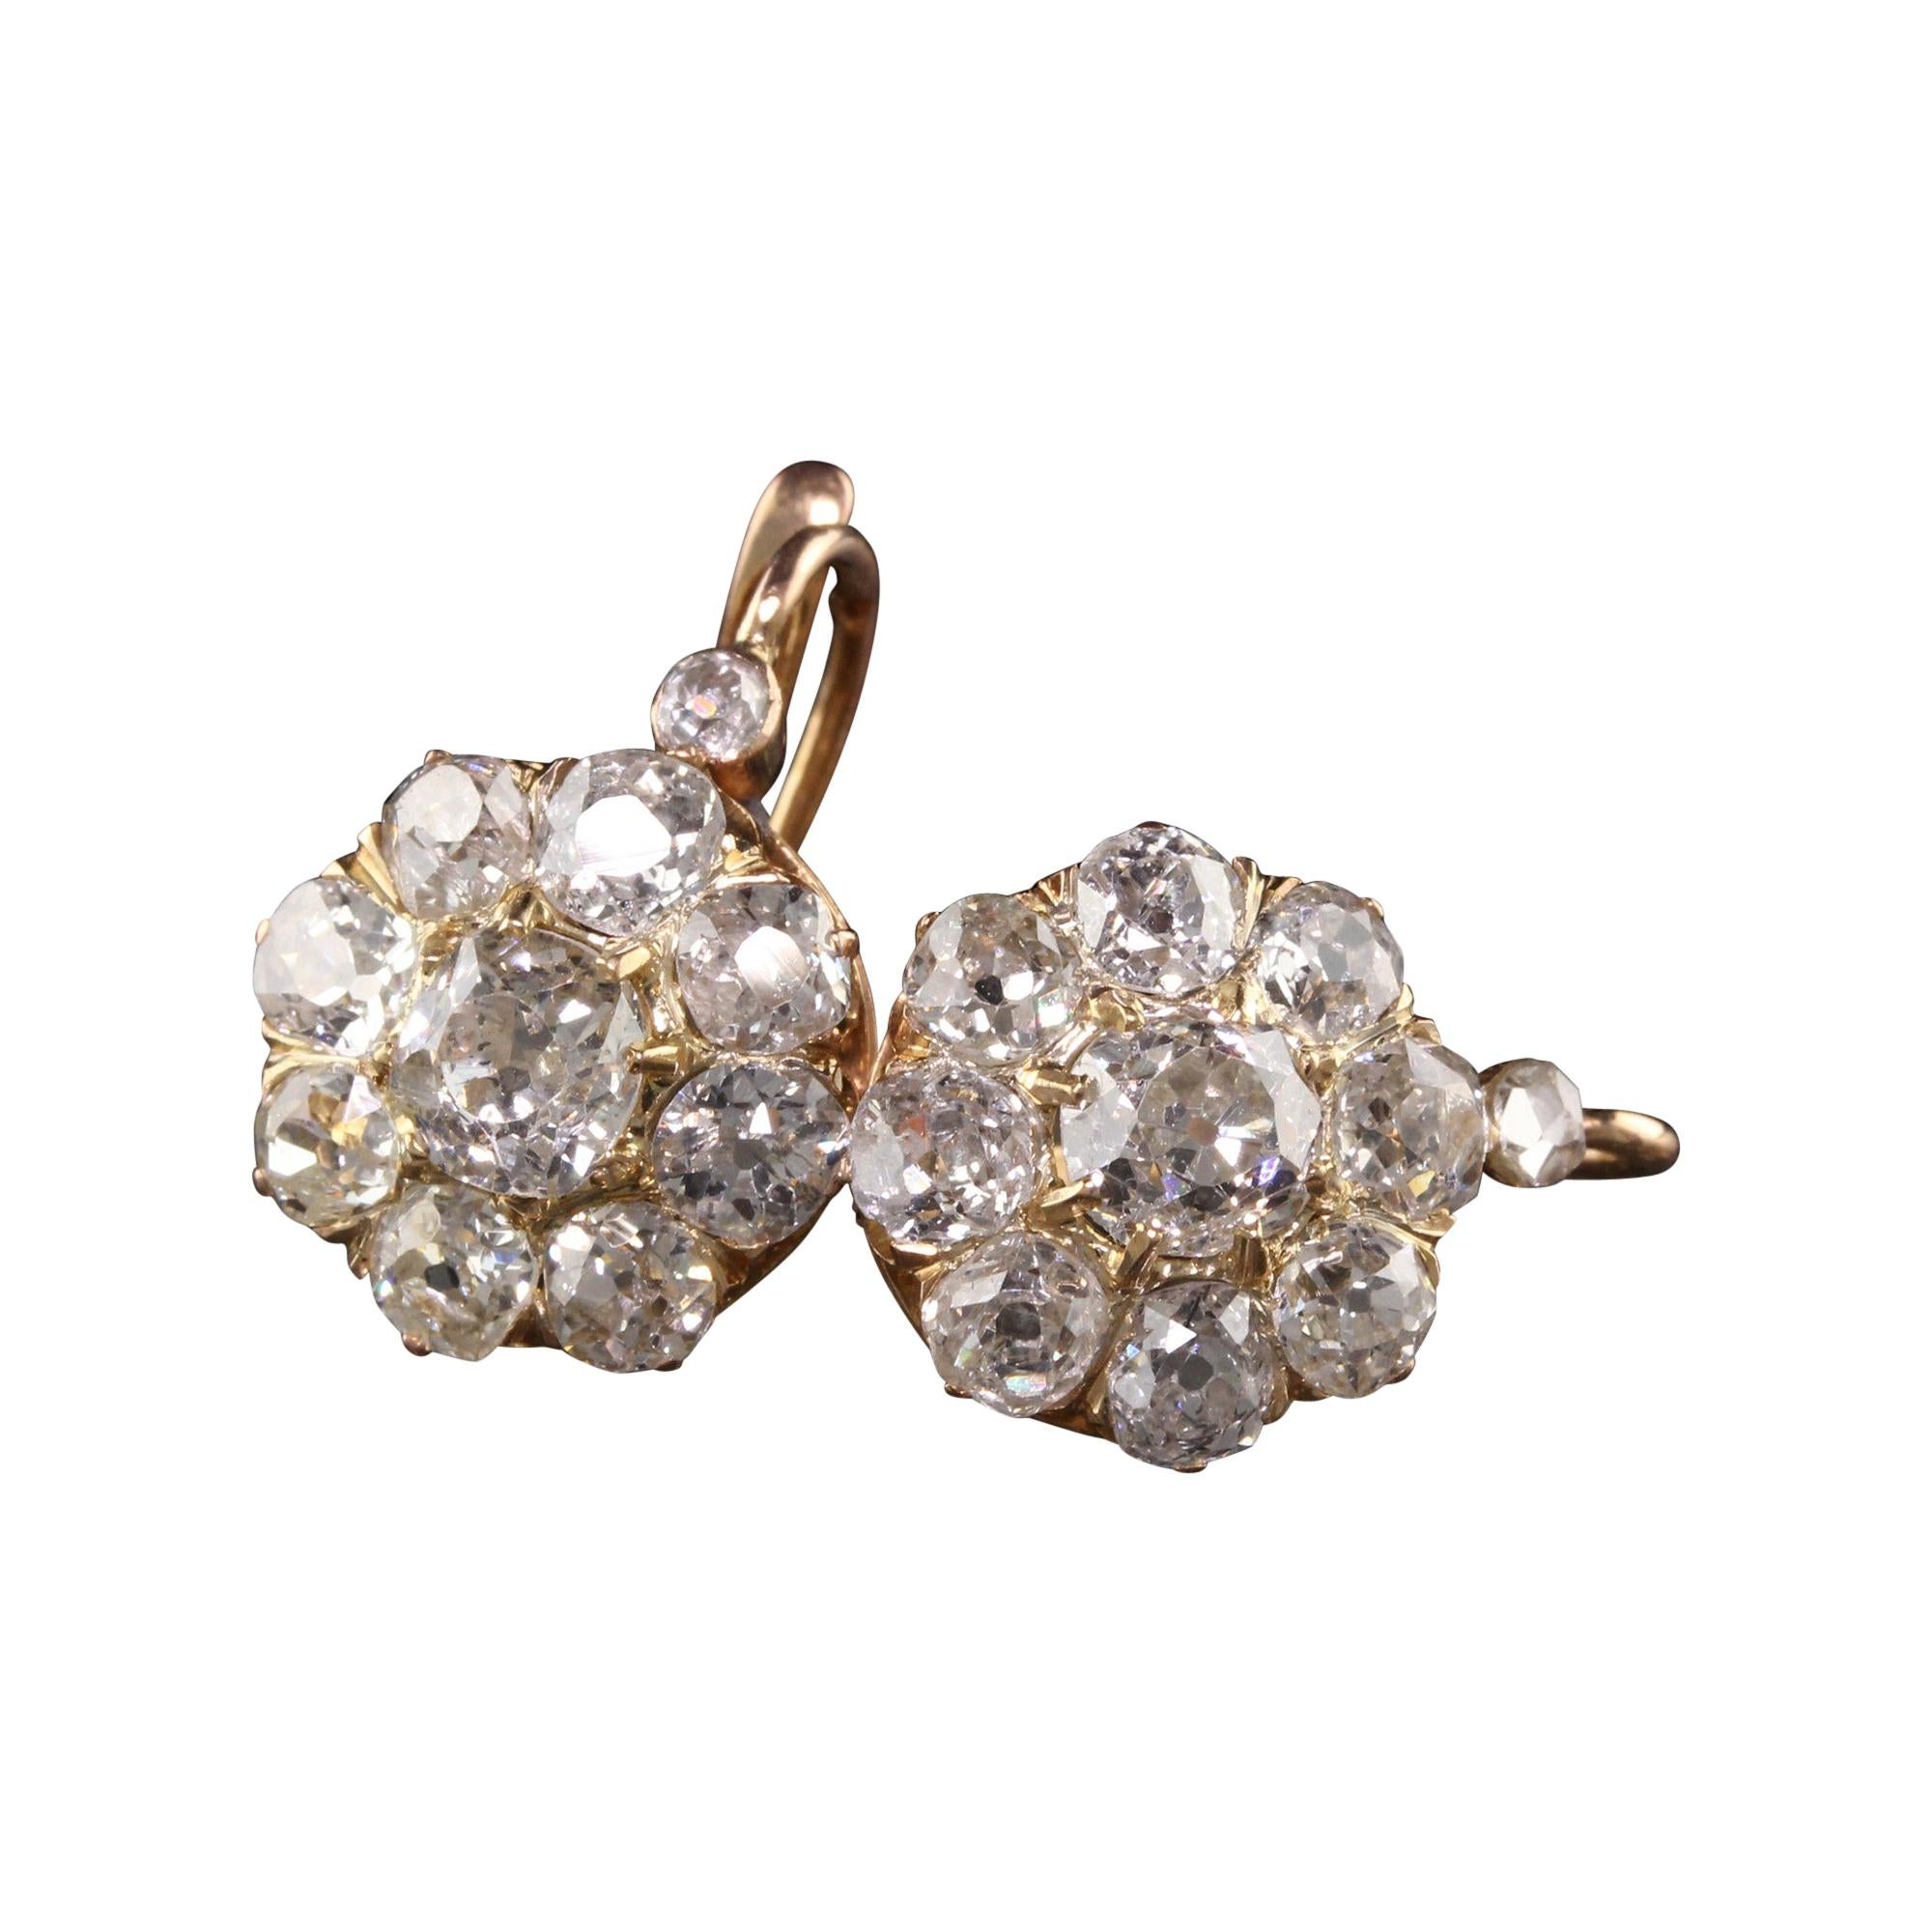 Antique Victorian 18k Rose Gold Old Mine Cut Diamond Cluster Earrings